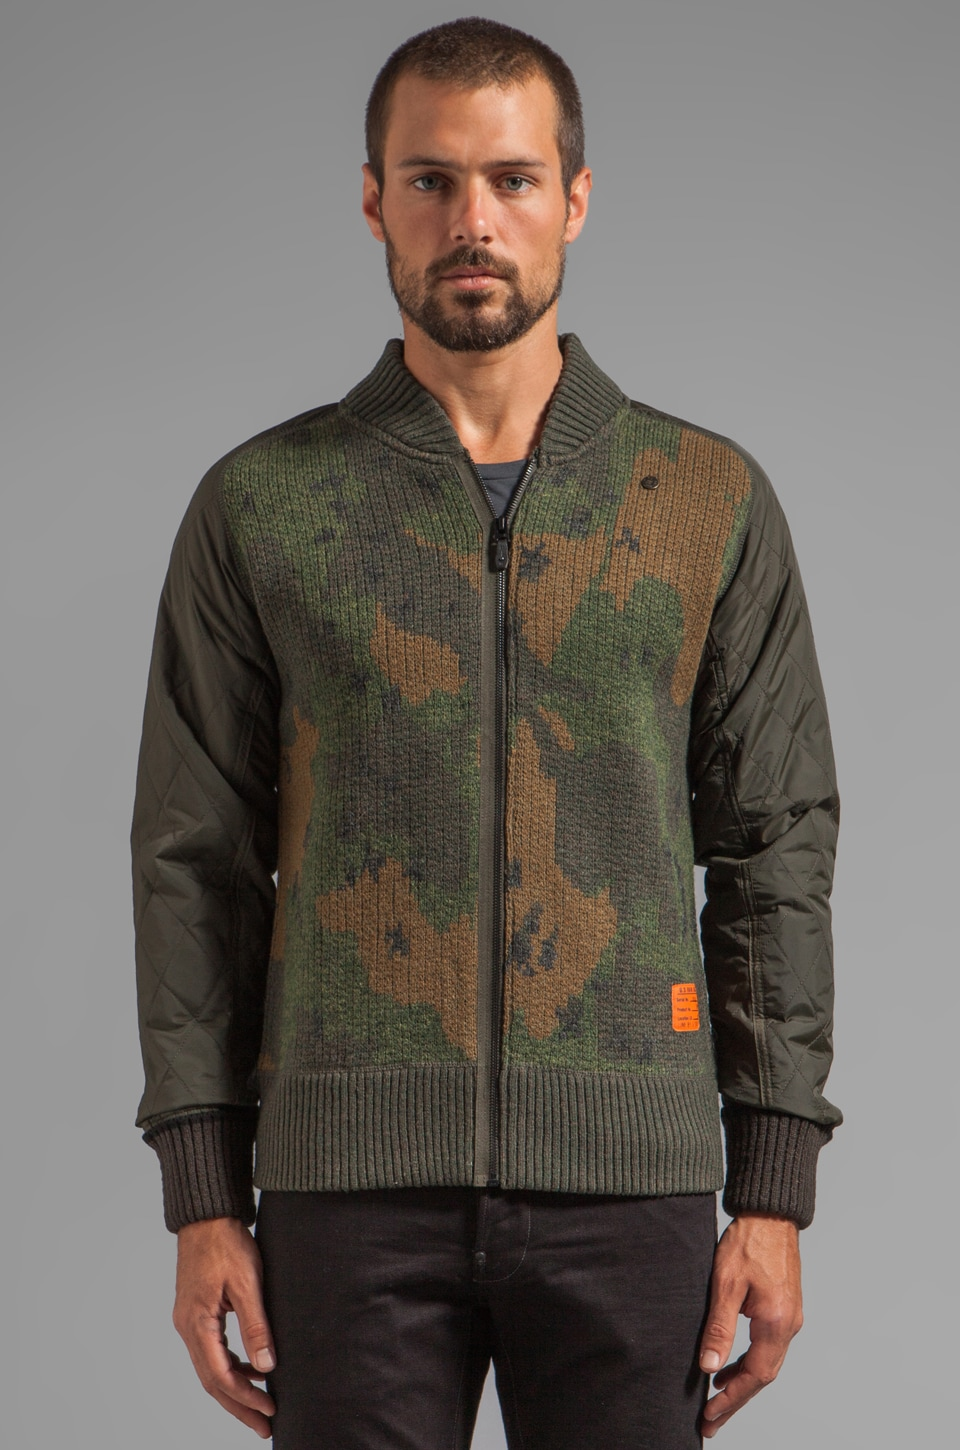 G-Star Strike Camo Vest Knit in Arsenic Heather